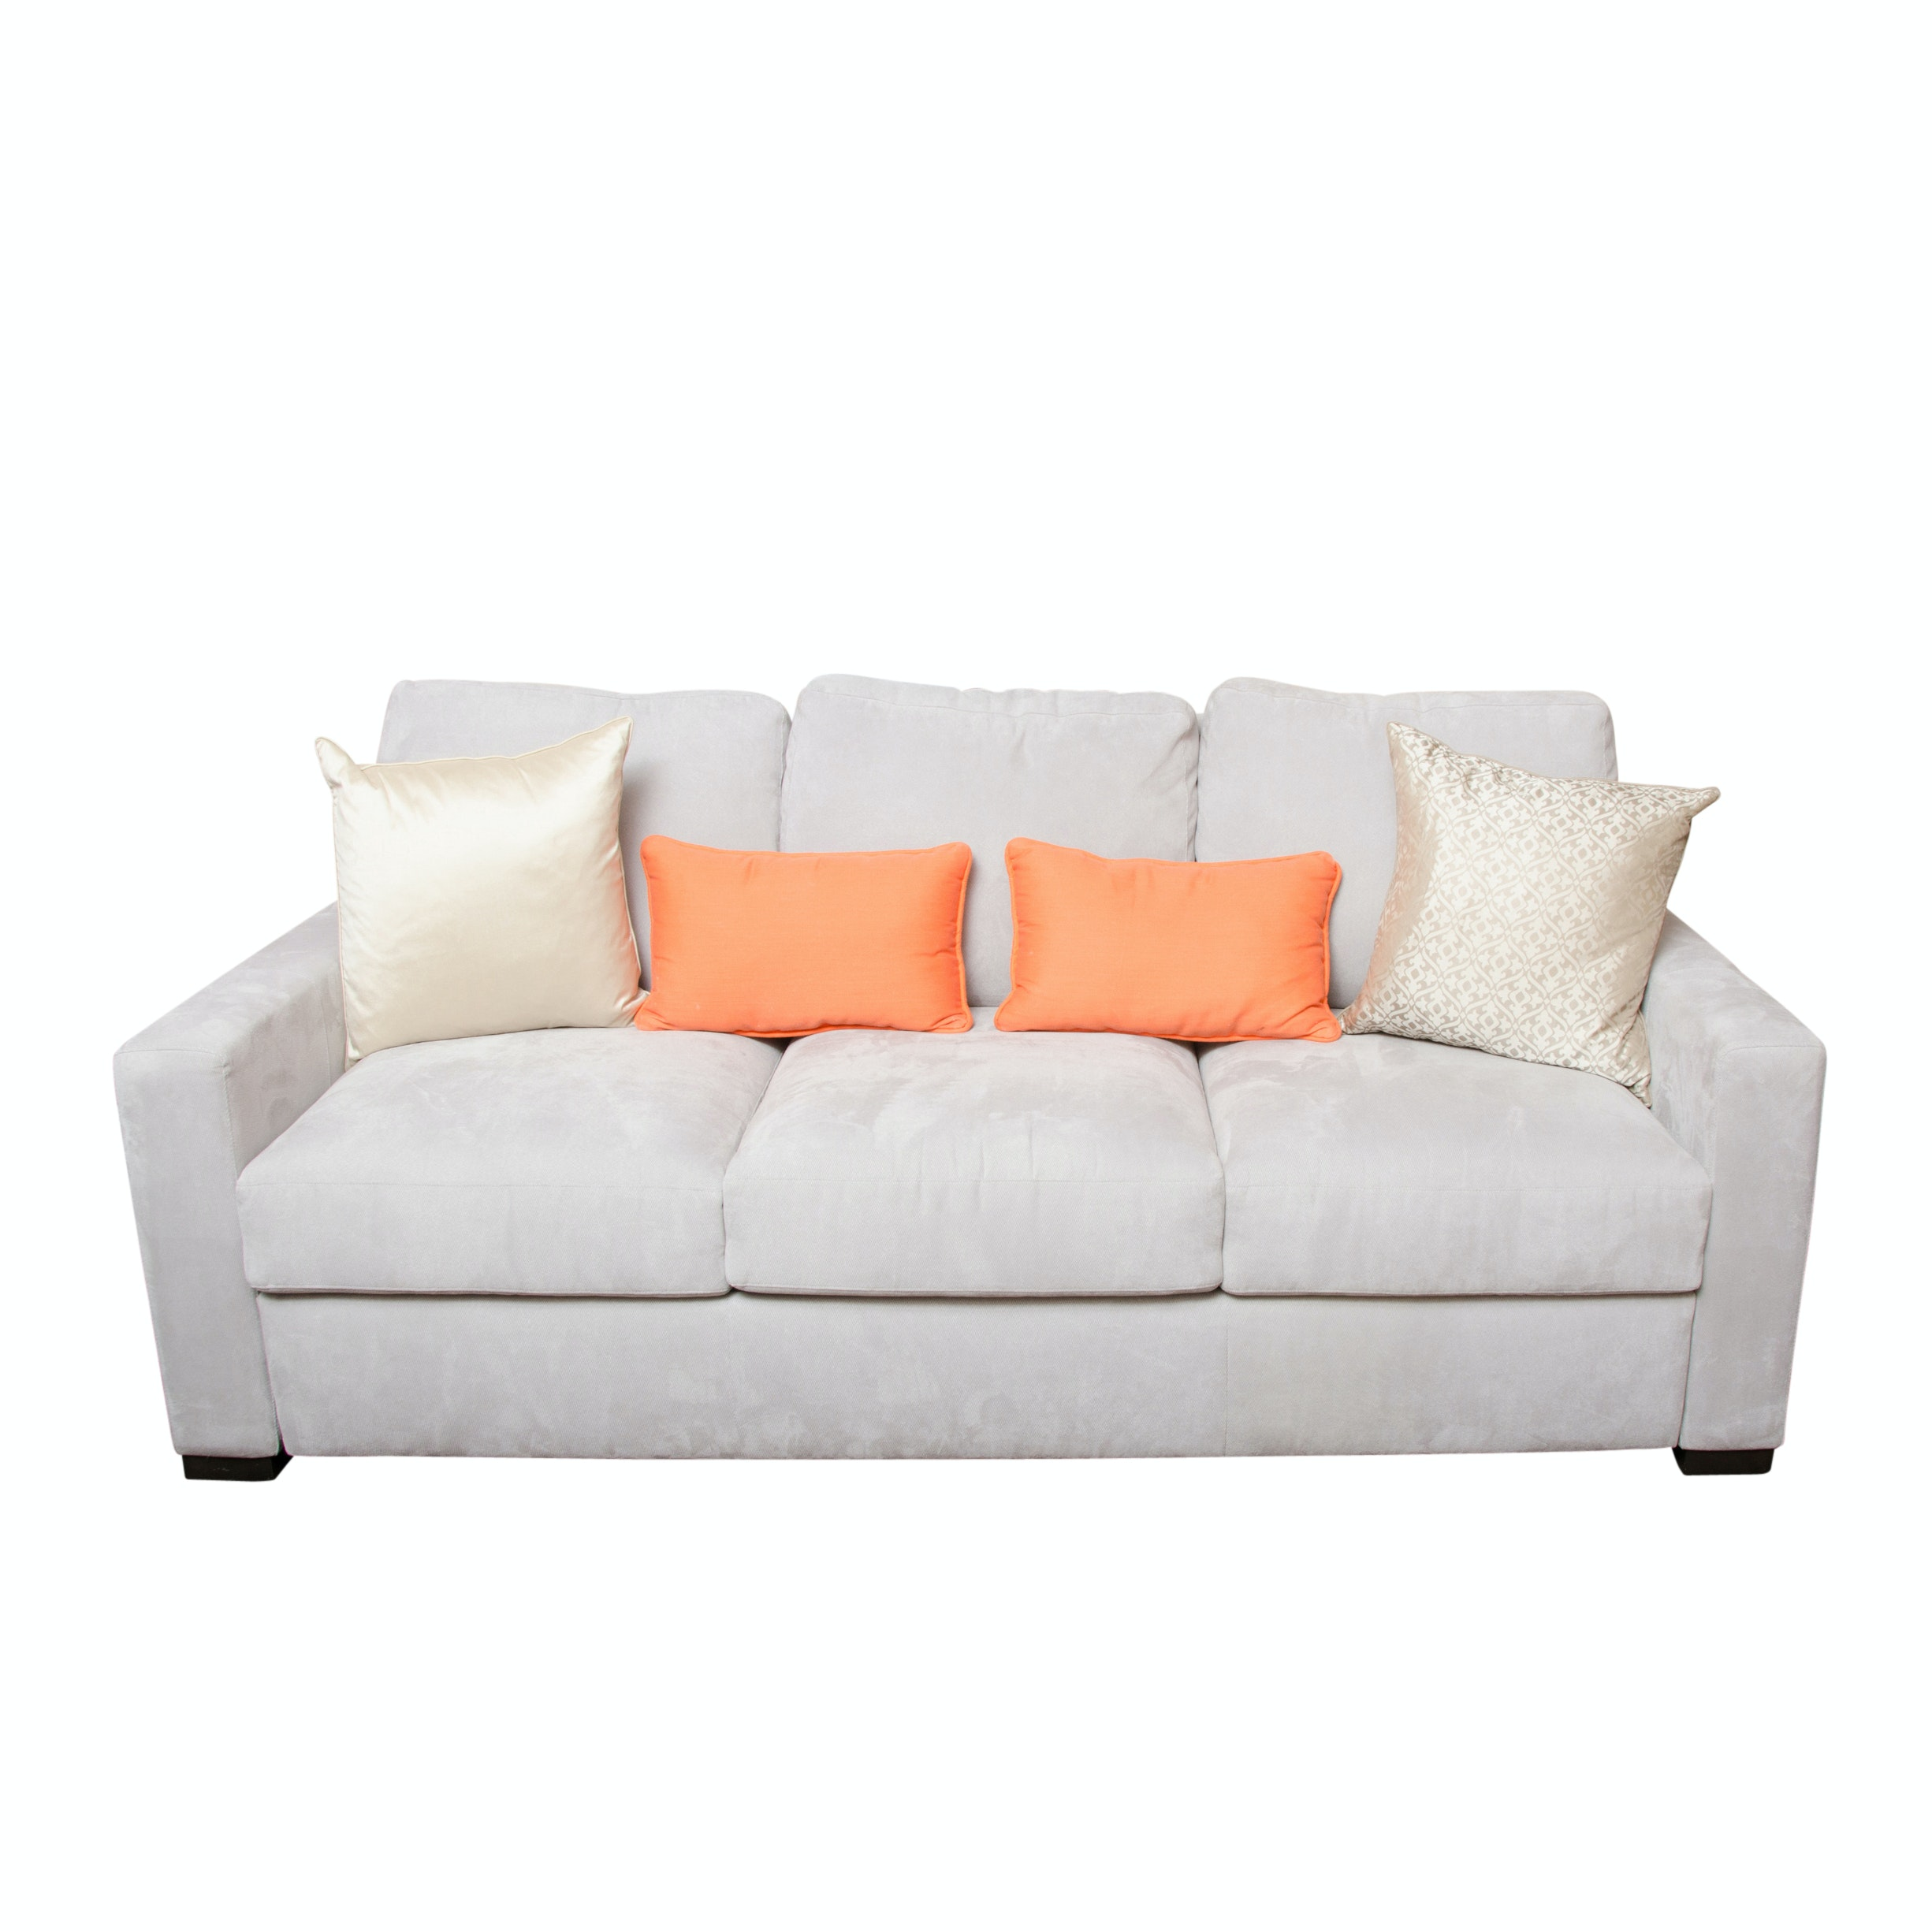 Light Grey Upholstered Sleeper Sofa by American Leather